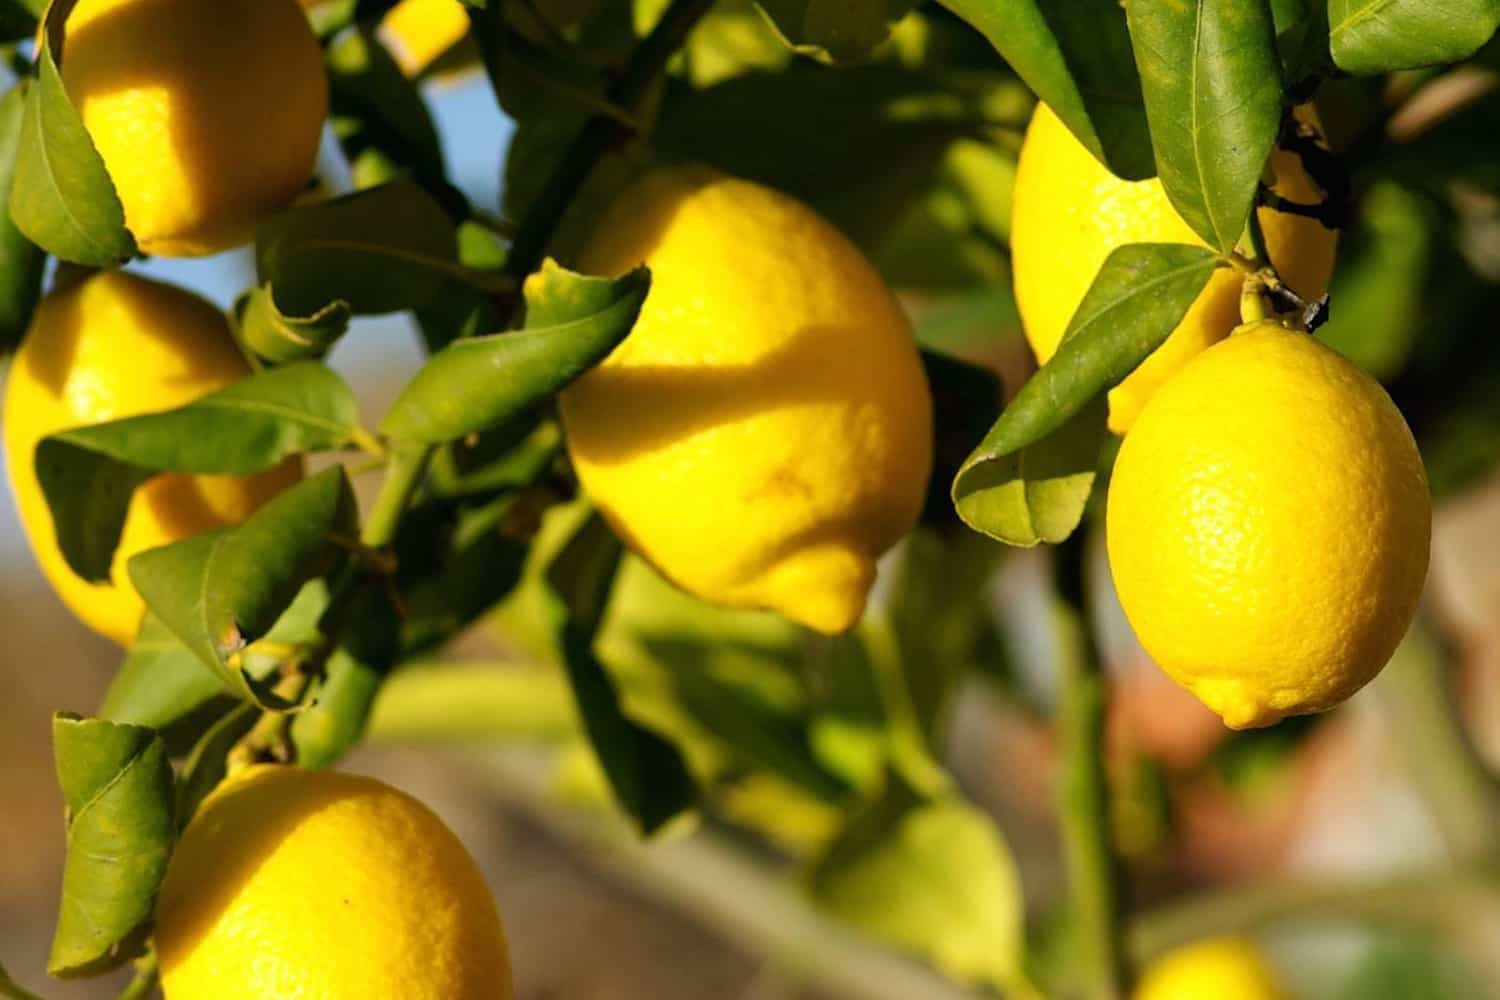 L'essence de citron, un antiseptique indispensable